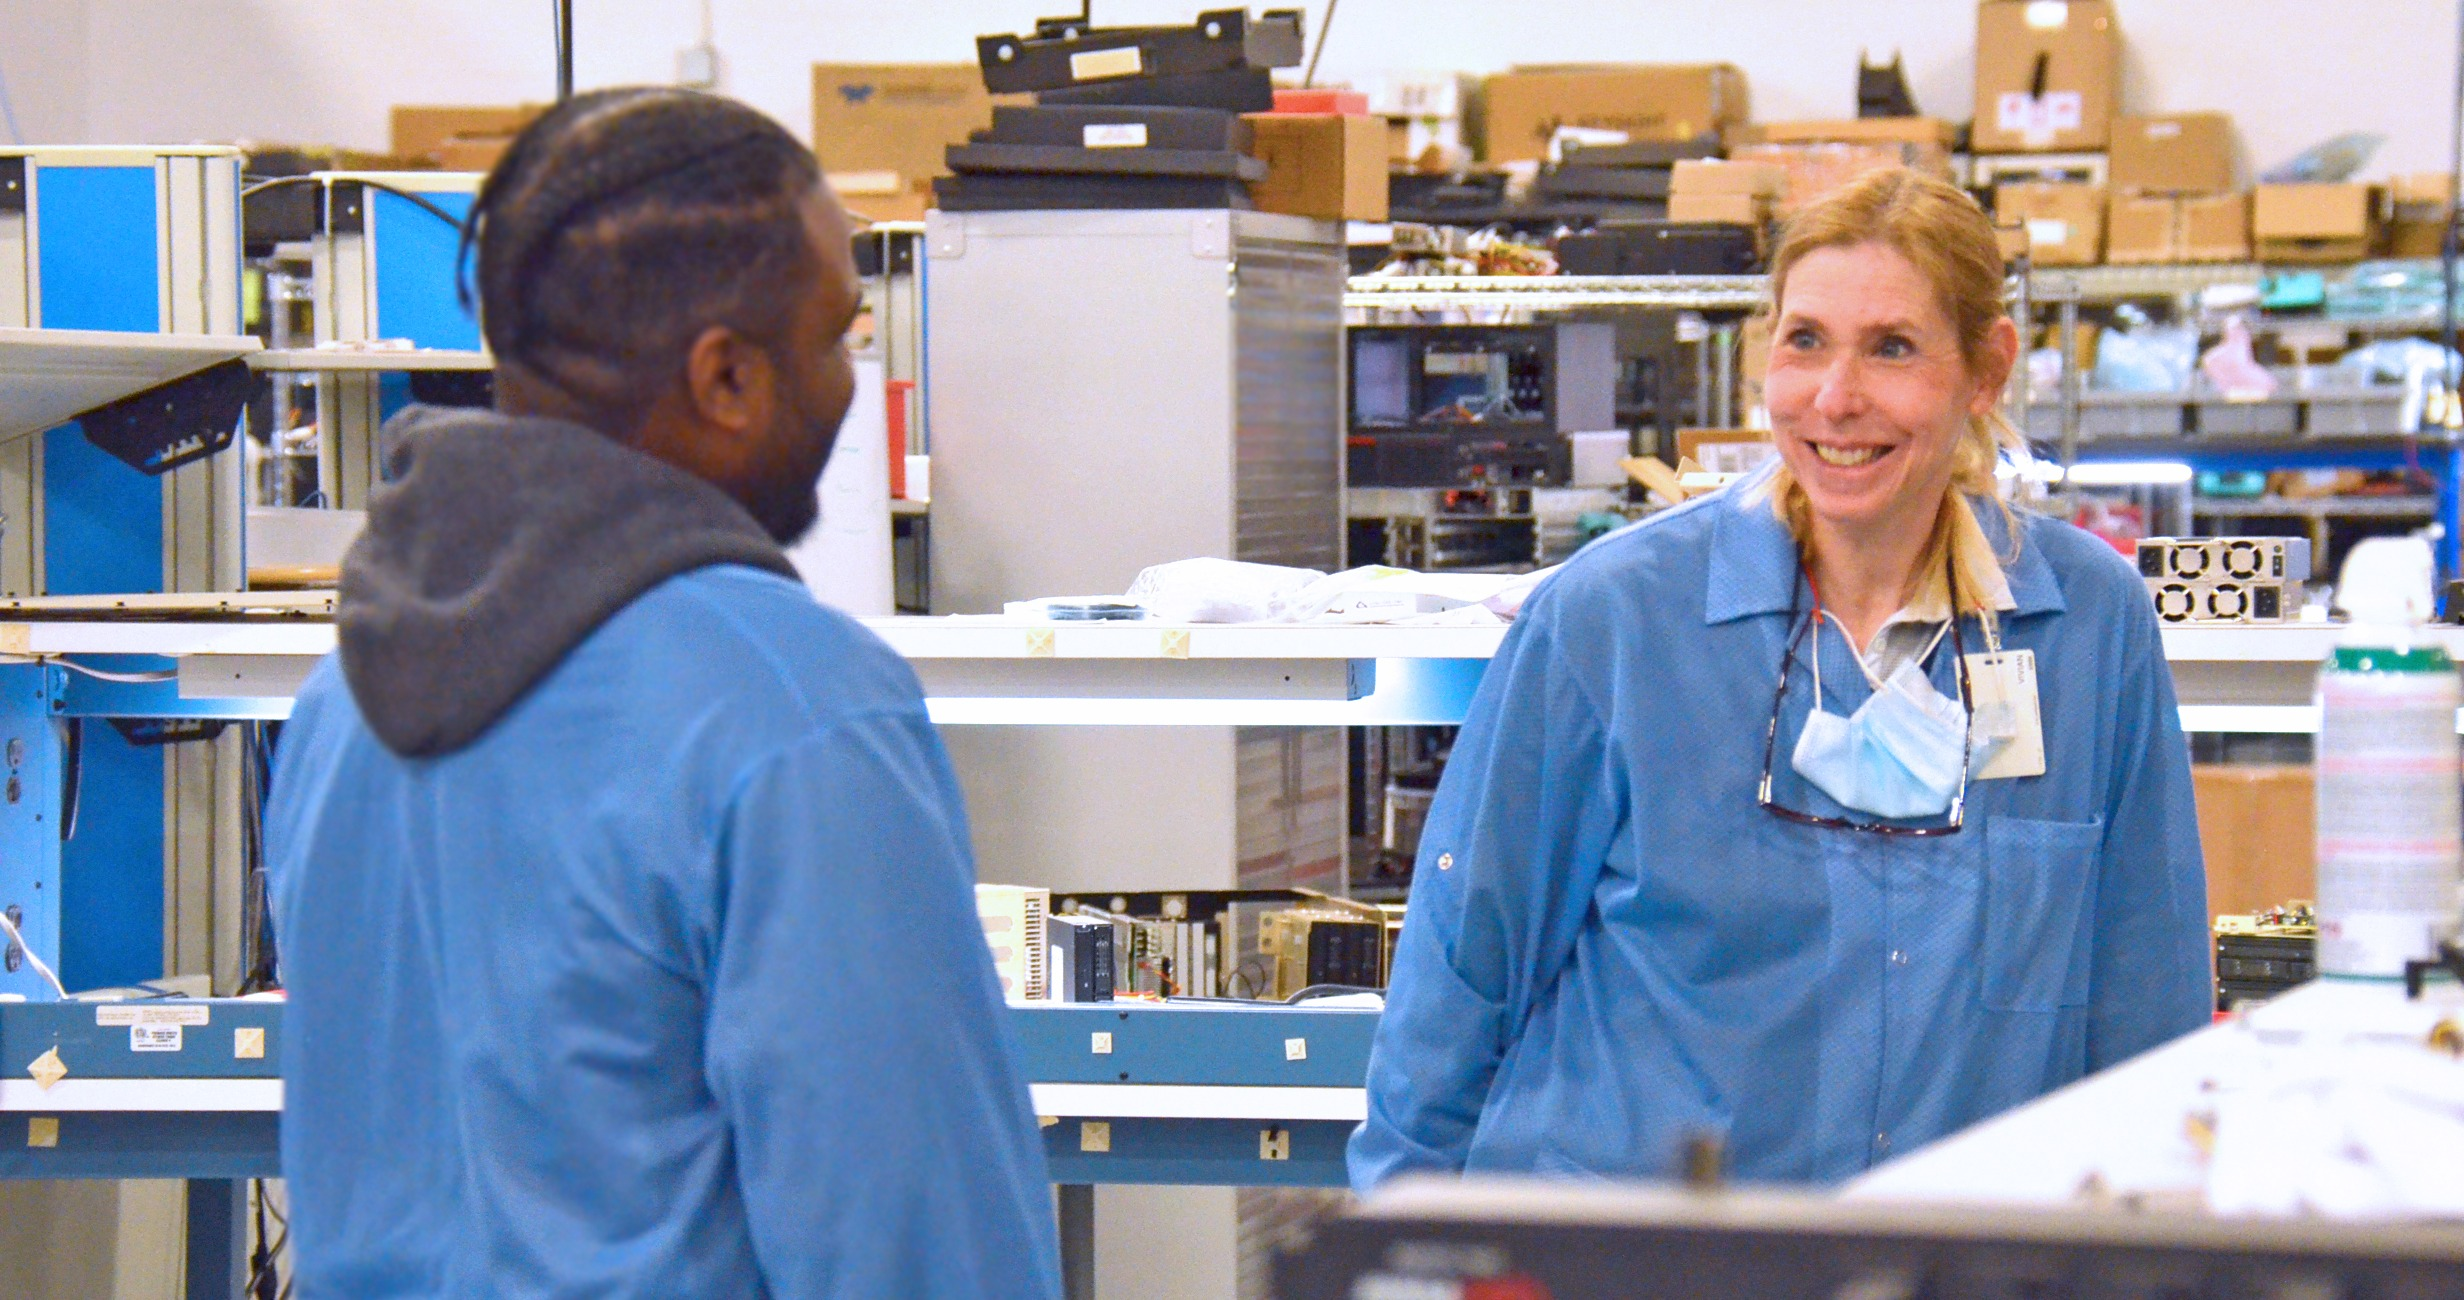 This is a photo of two Trenton Systems engineers conversing and laughing with each other.